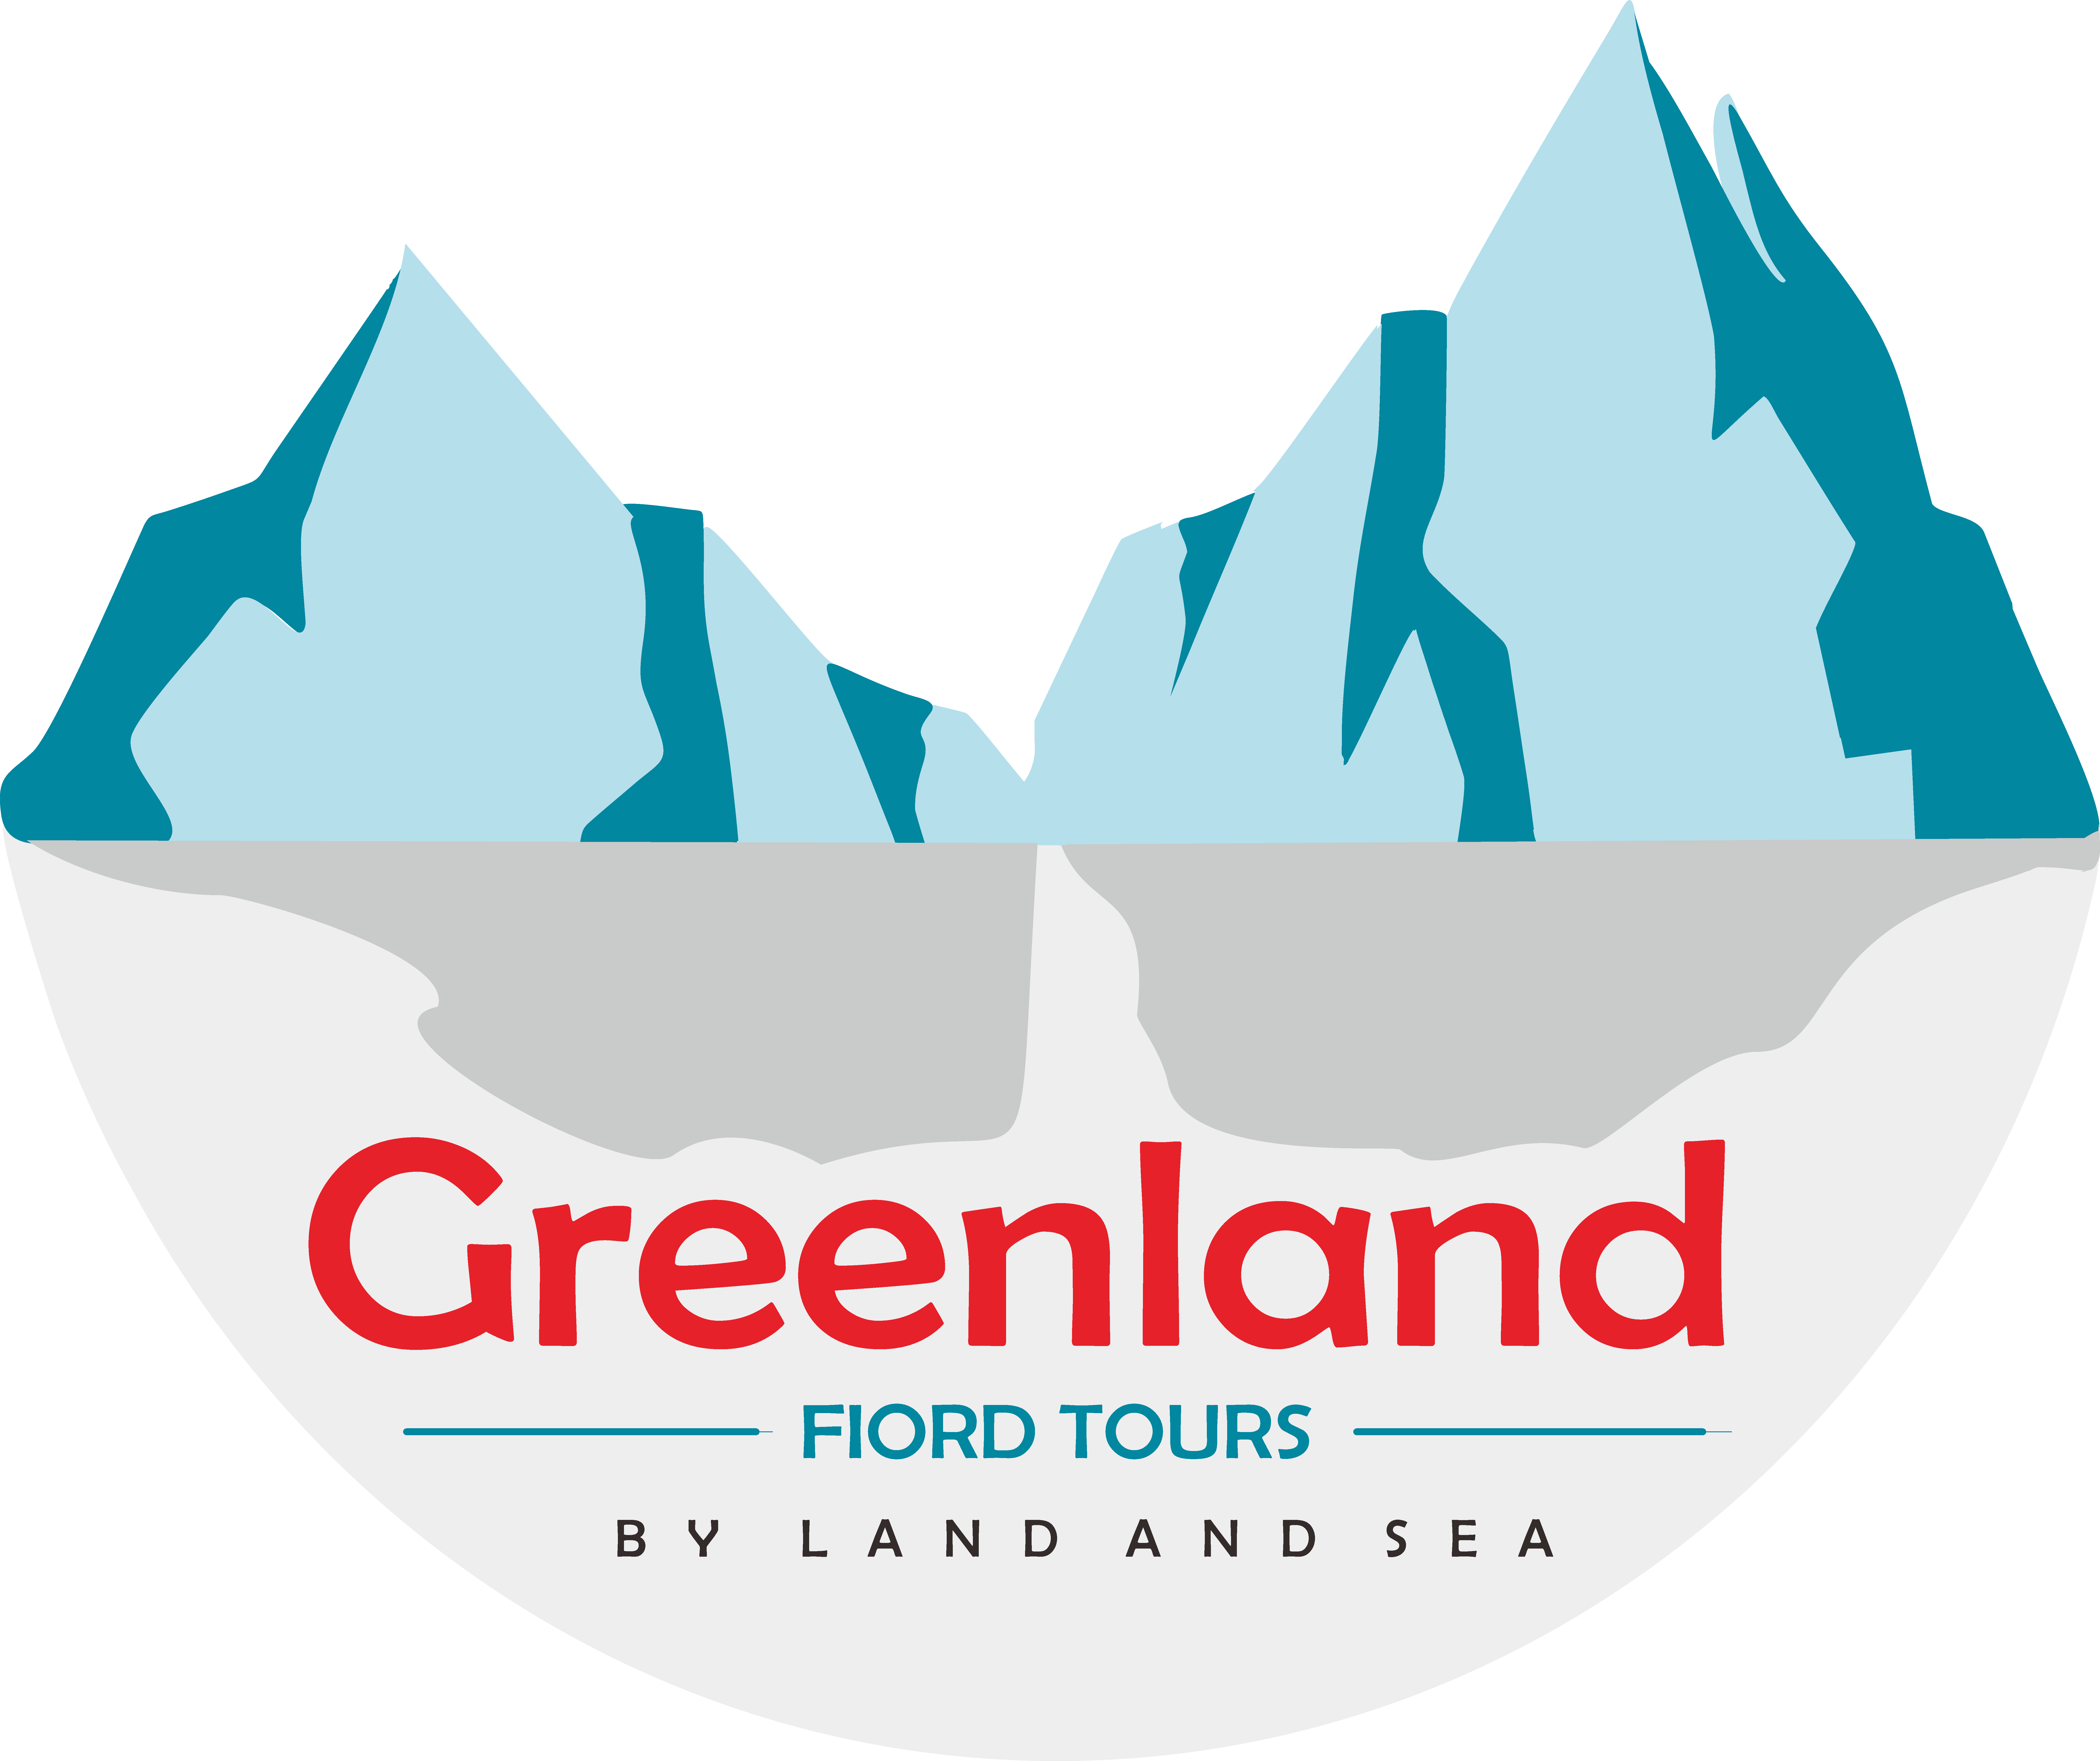 Greenland Fiord Tours